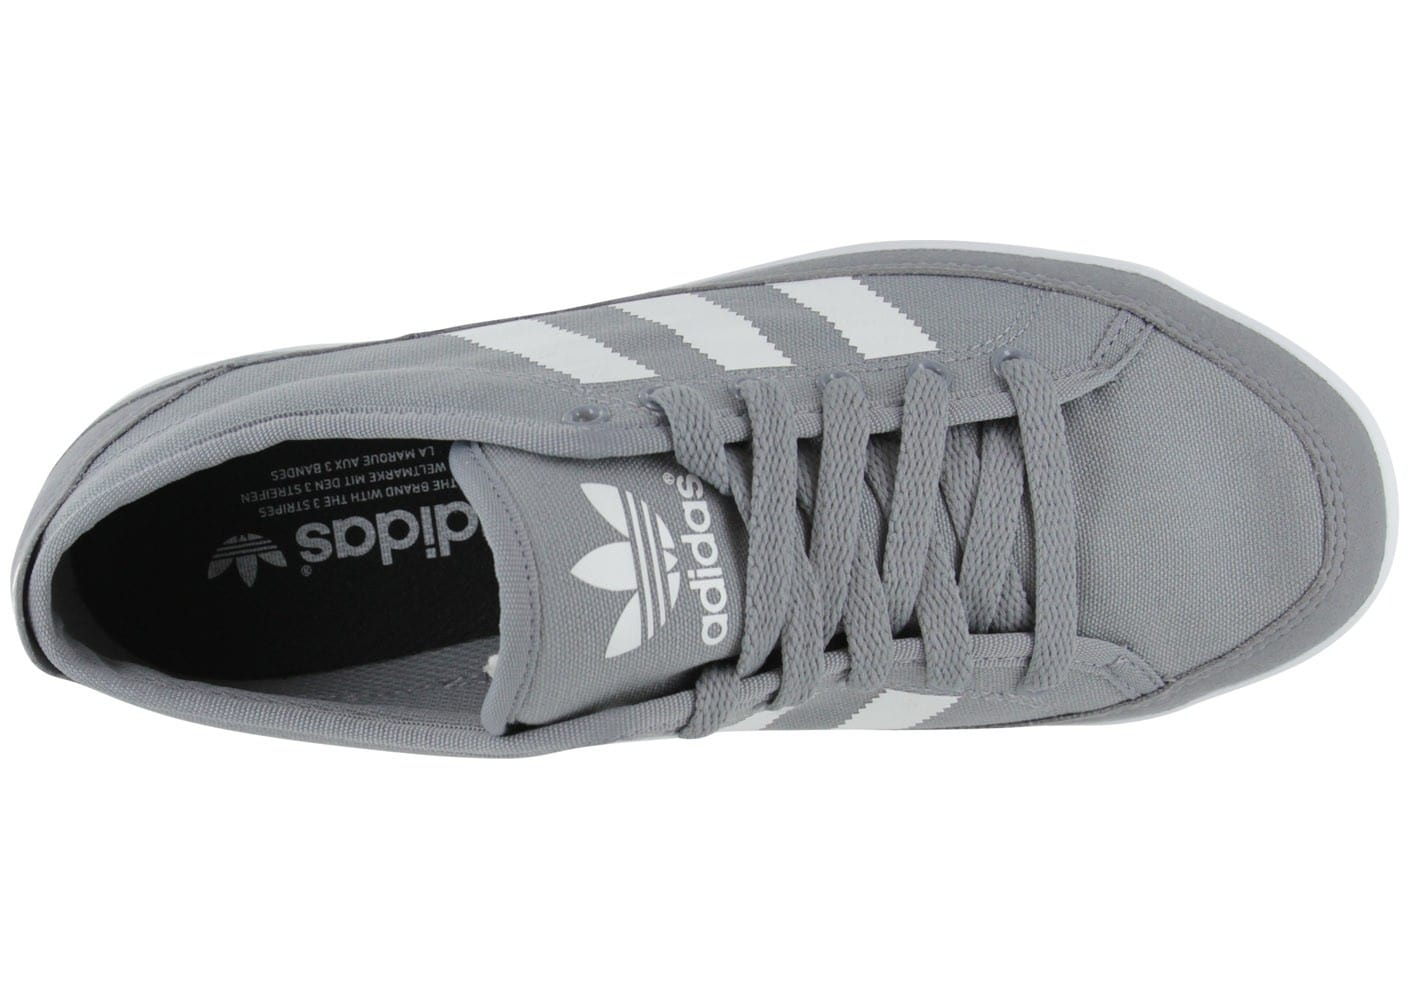 Adidas Nizza chaussures